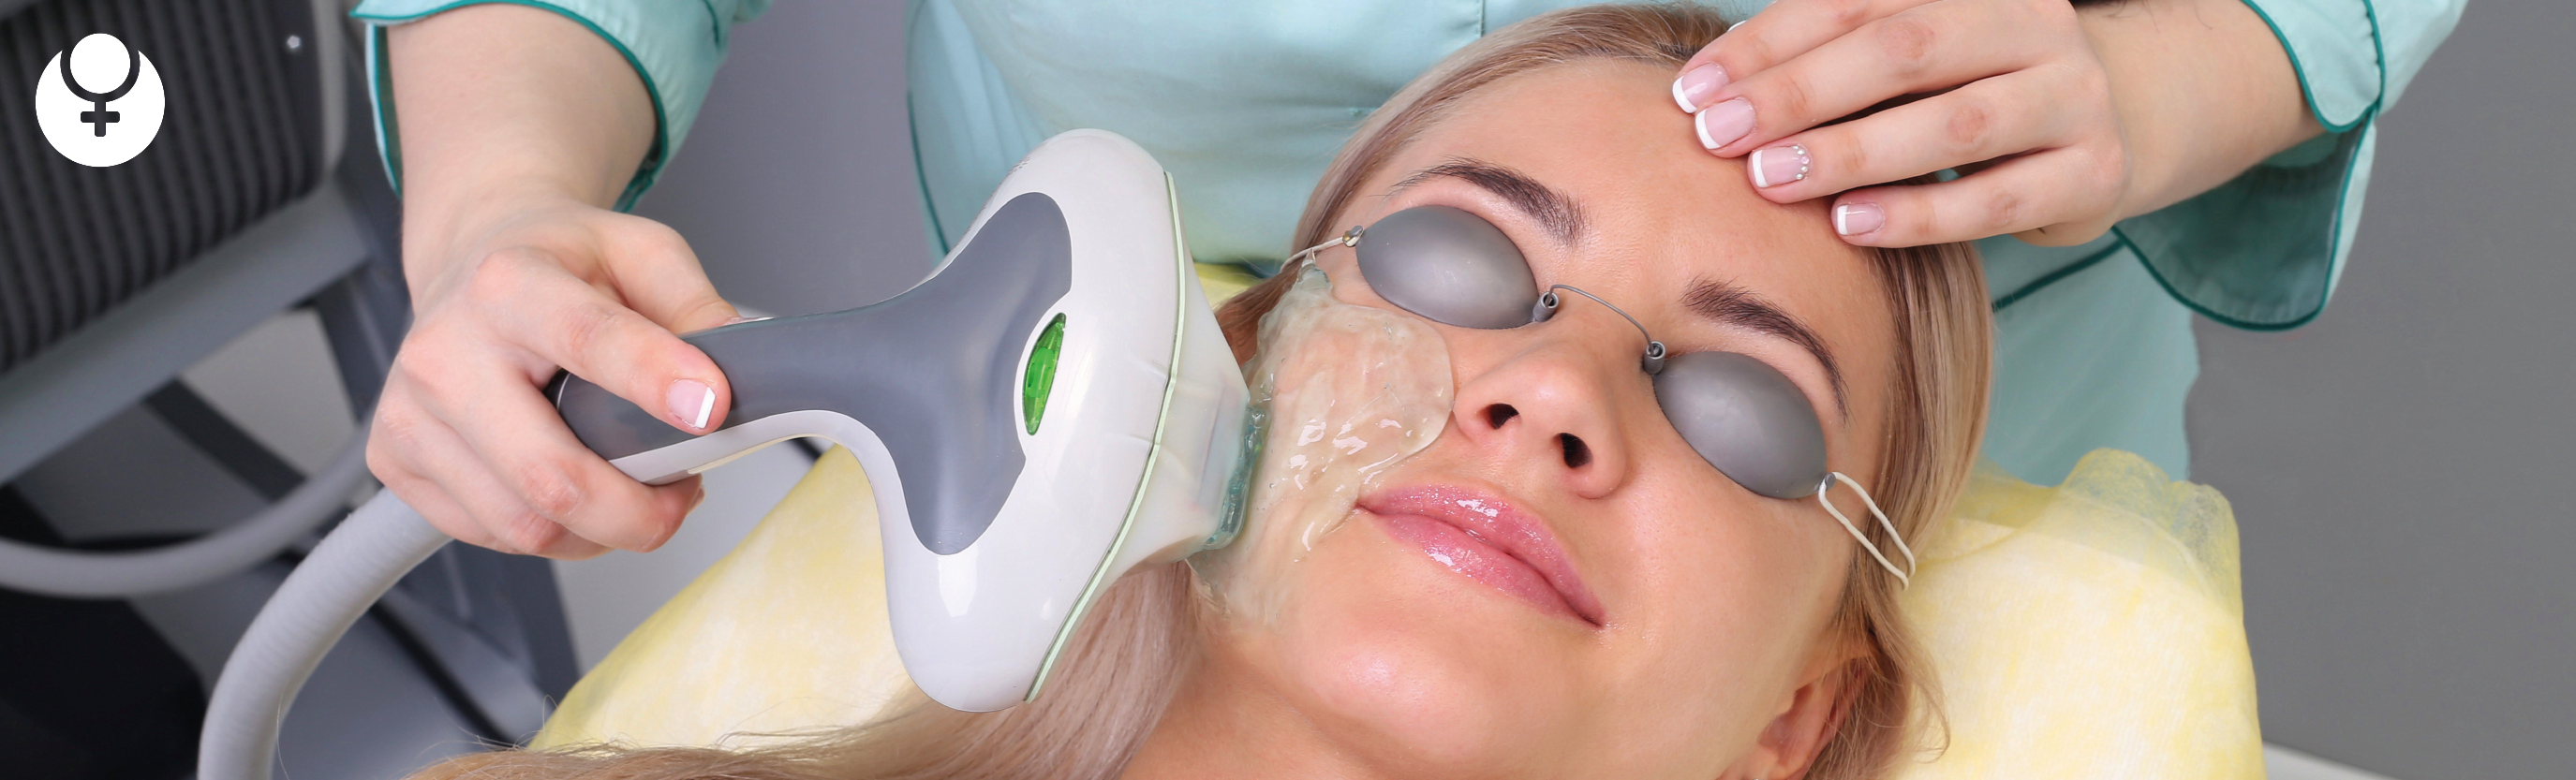 TREATMENTS_LASER_LAS_PALMAS_DE_GRAN_CANARIA